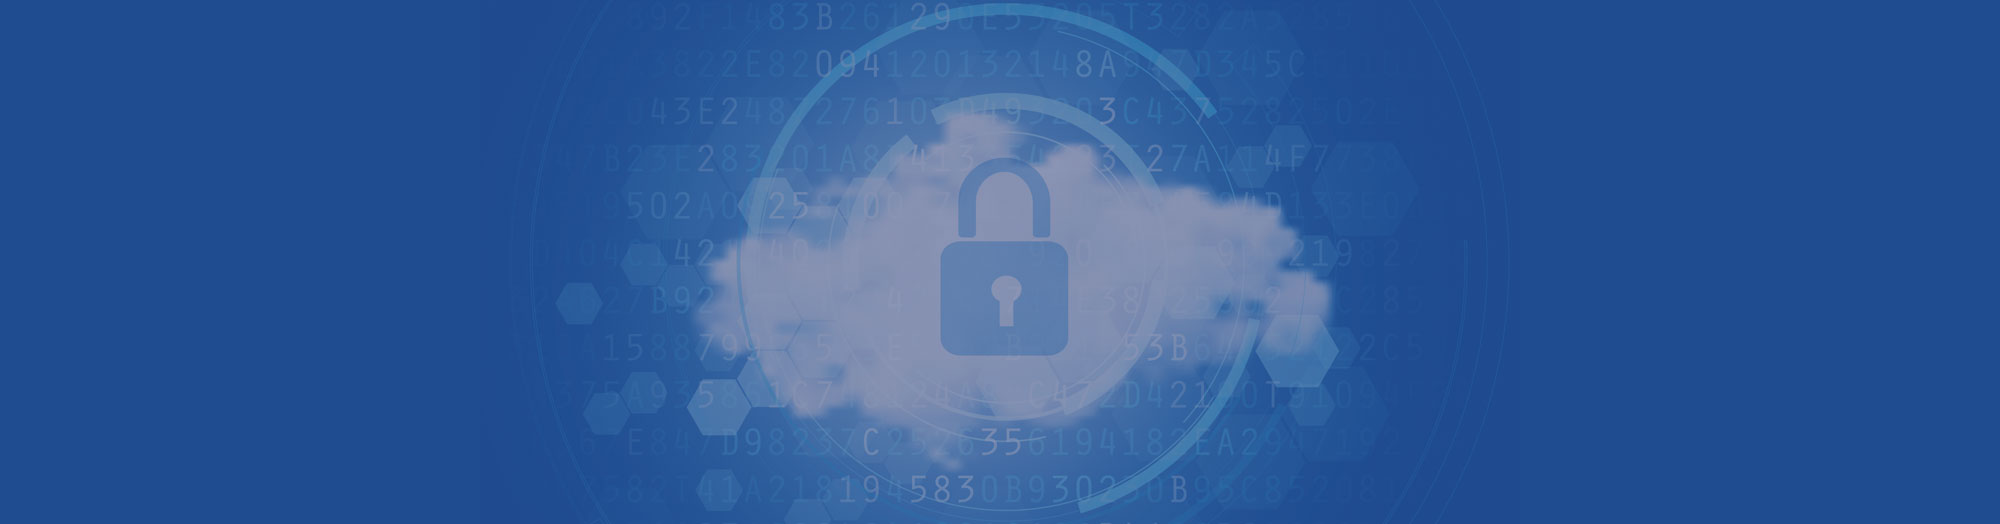 Secure Padlock in Cloud Blue Background